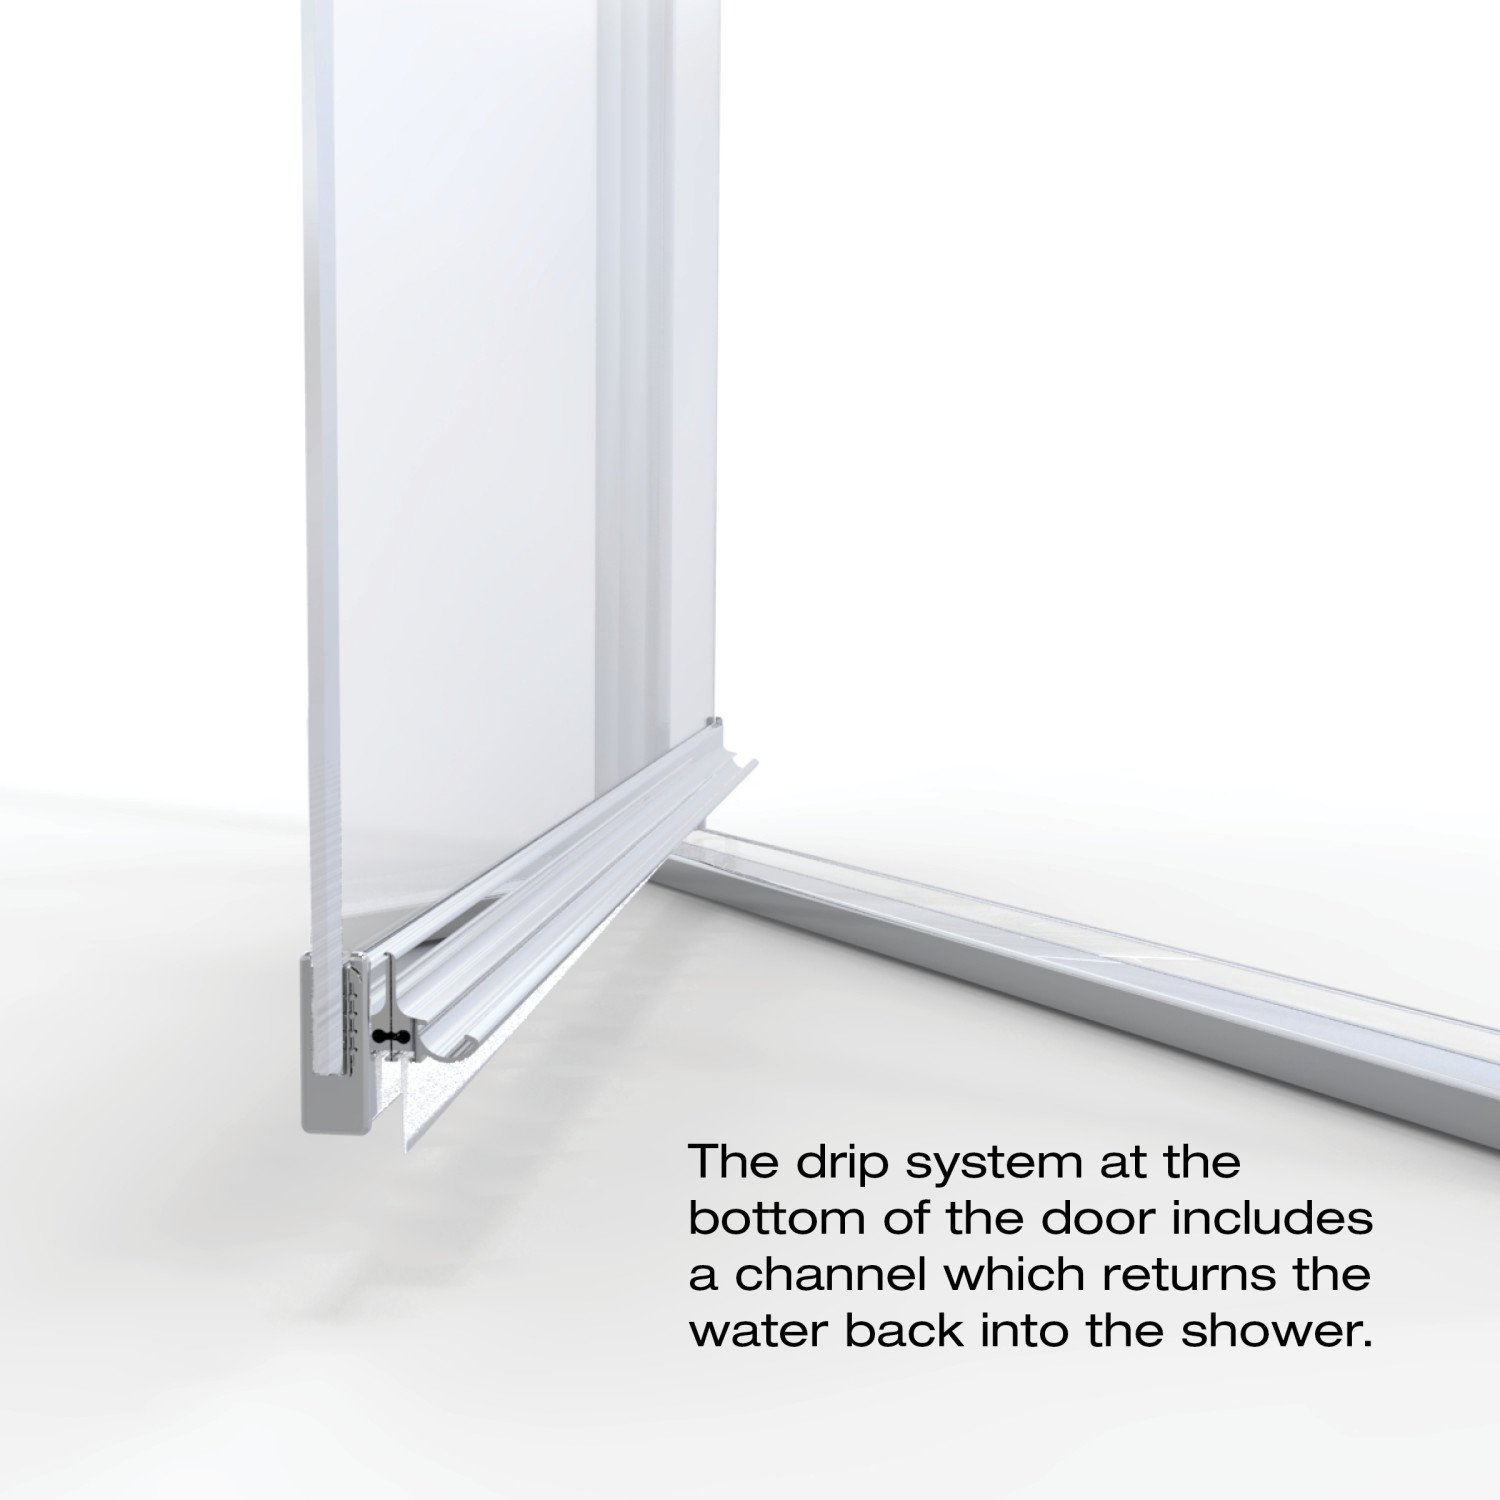 Basco Classic 28.625 to 30.125 in. width, Semi-Frameless Pivot Shower Door, Clear Glass, Silver Finish by Basco Shower Door (Image #7)